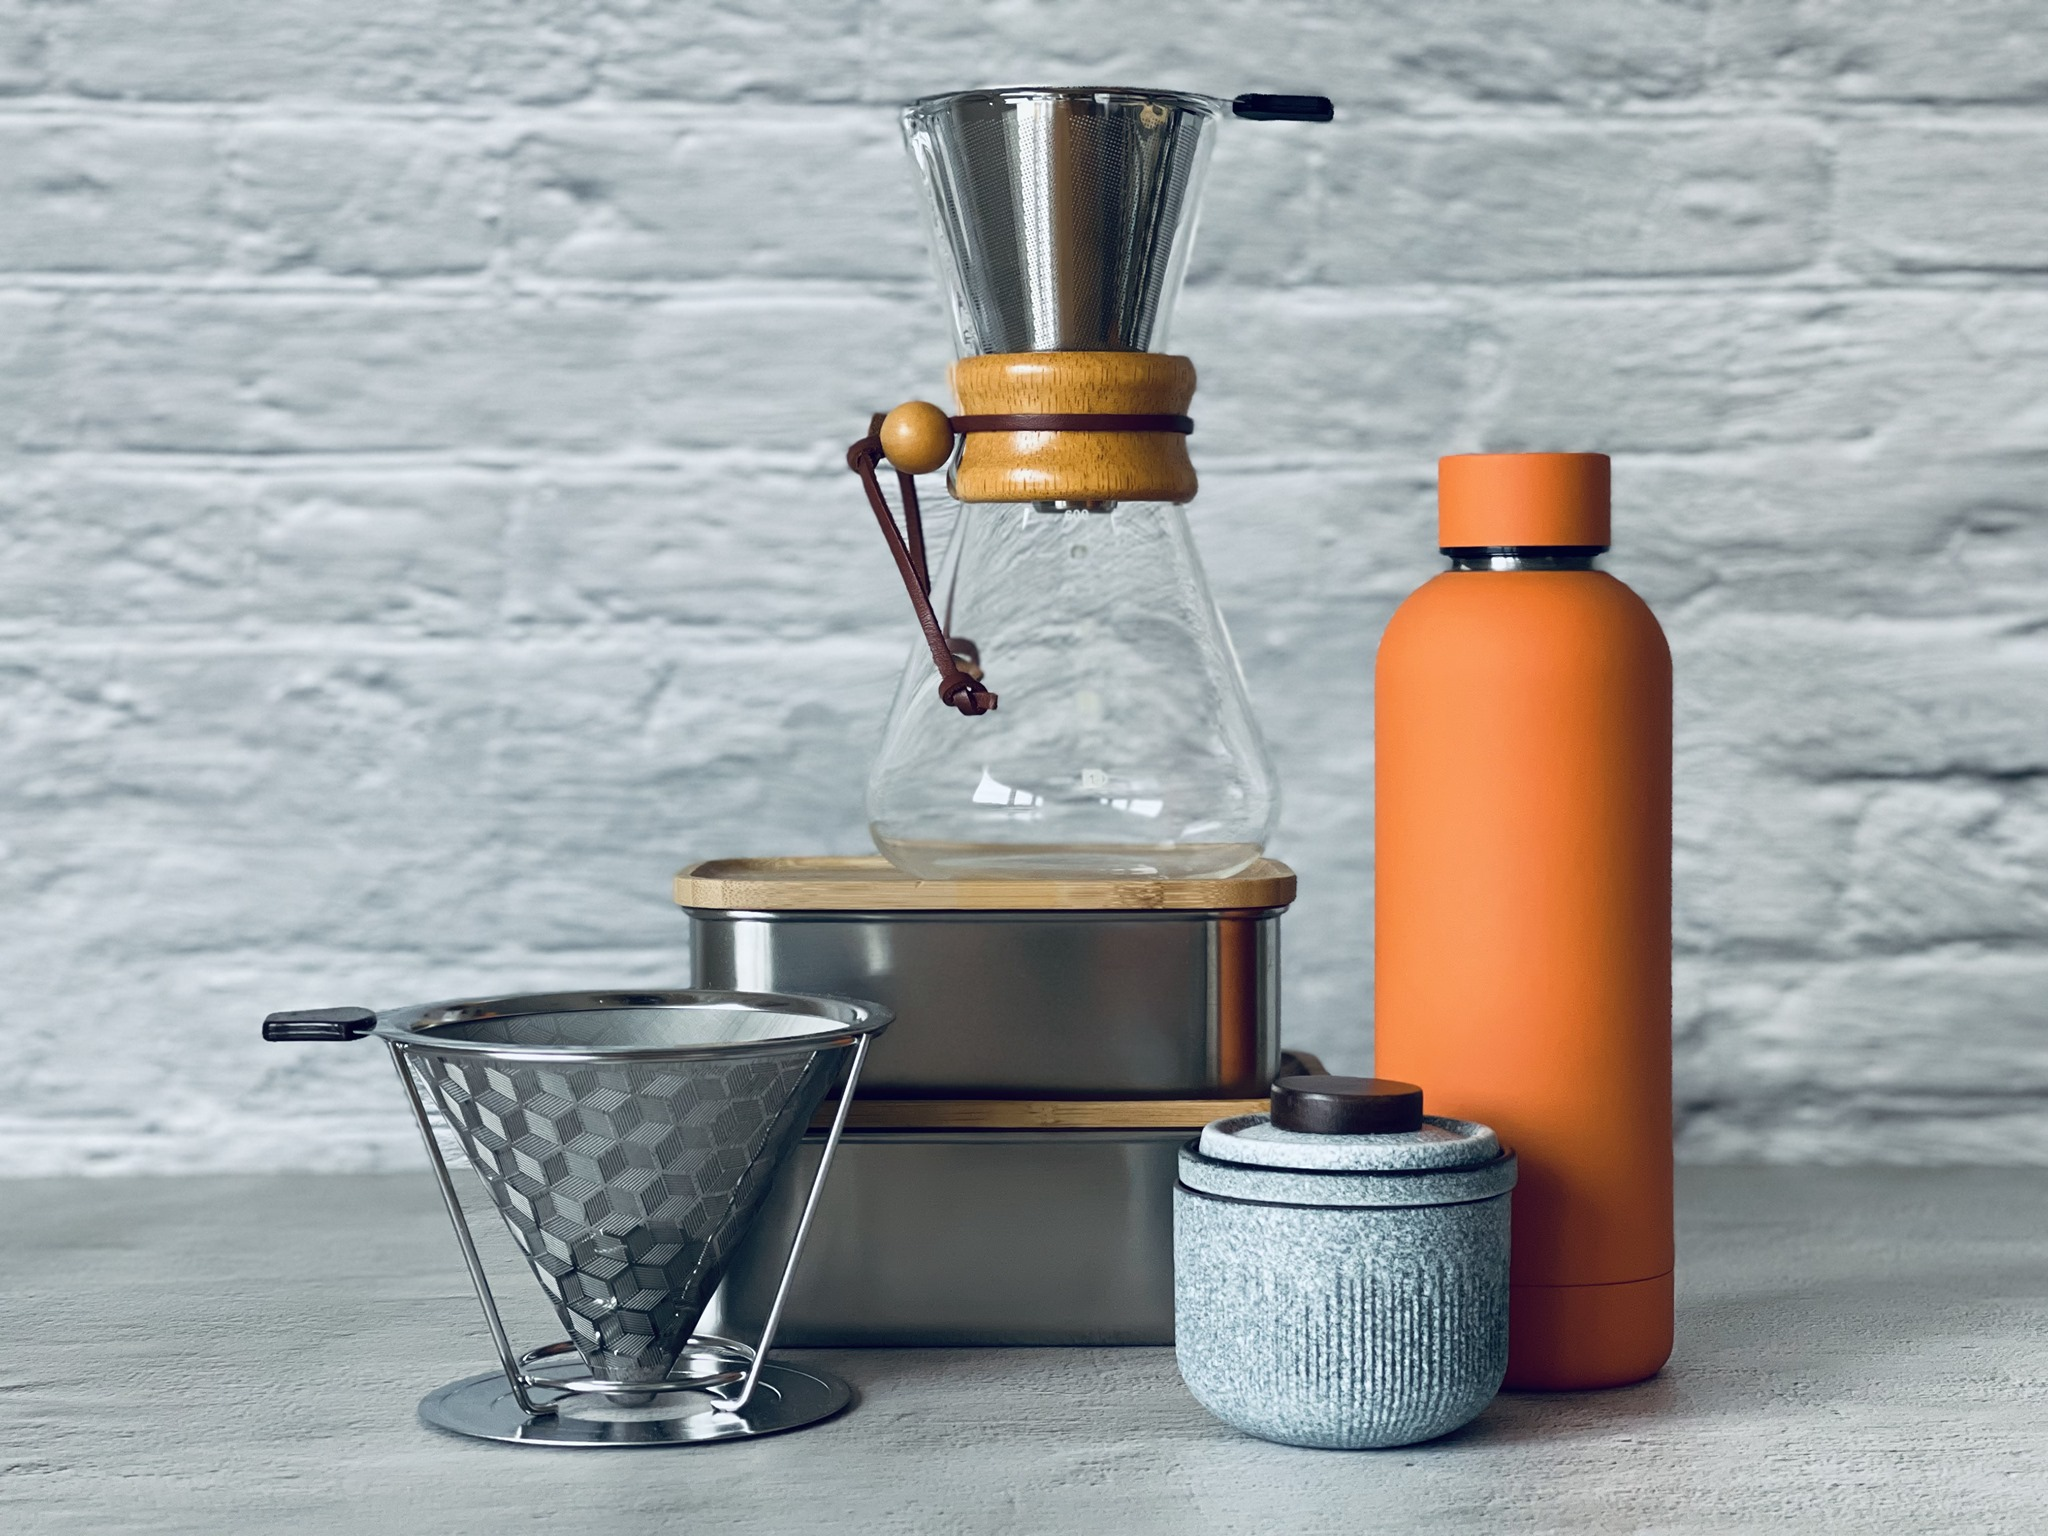 Tips for Brewing Better Coffee at Home